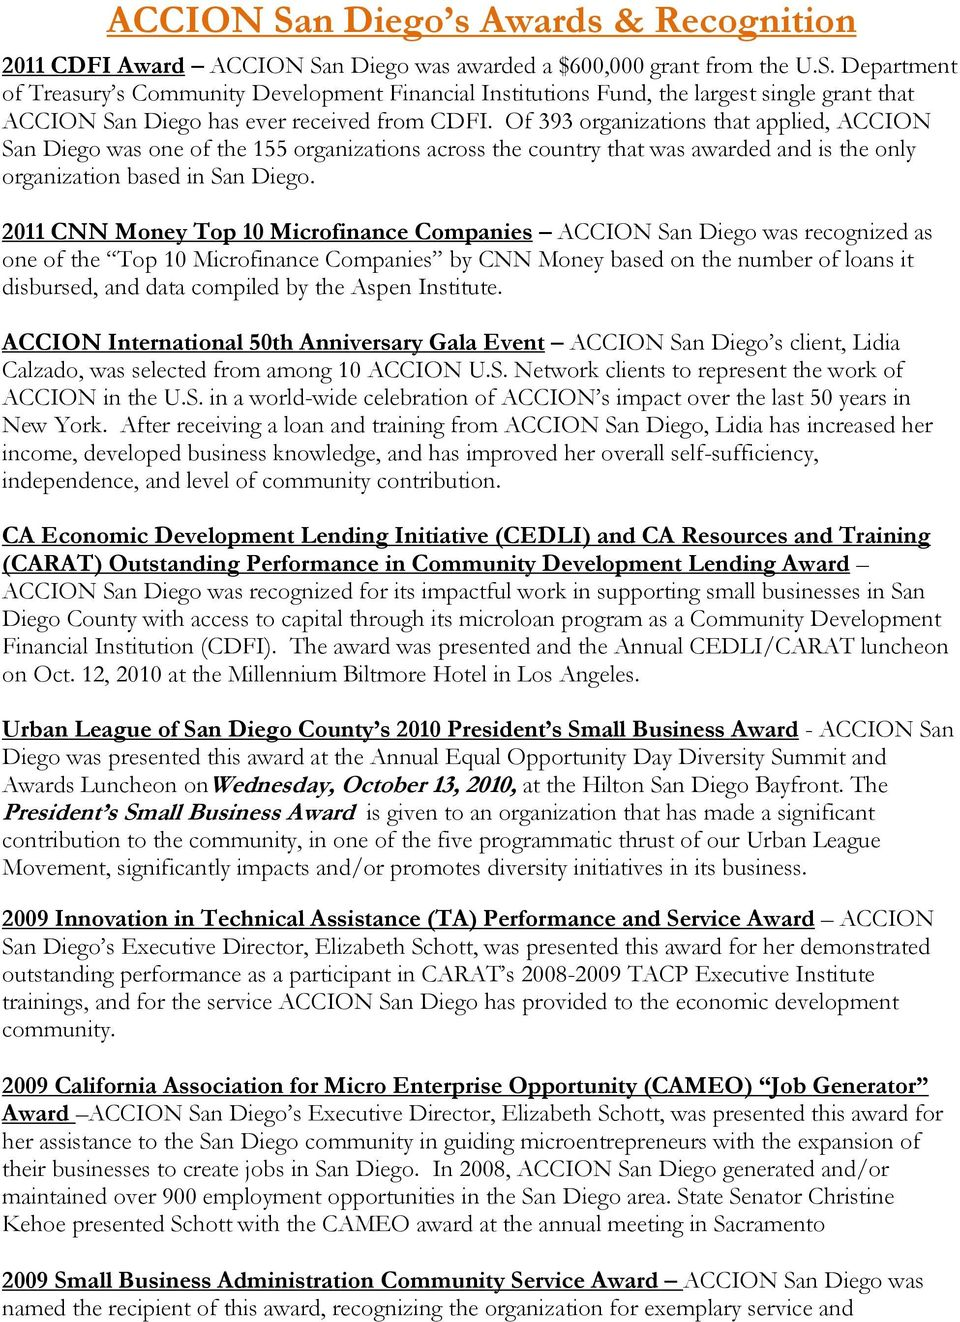 2011 CNN Money Top 10 Microfinance Companies ACCION San Diego was recognized as one of the Top 10 Microfinance Companies by CNN Money based on the number of loans it disbursed, and data compiled by